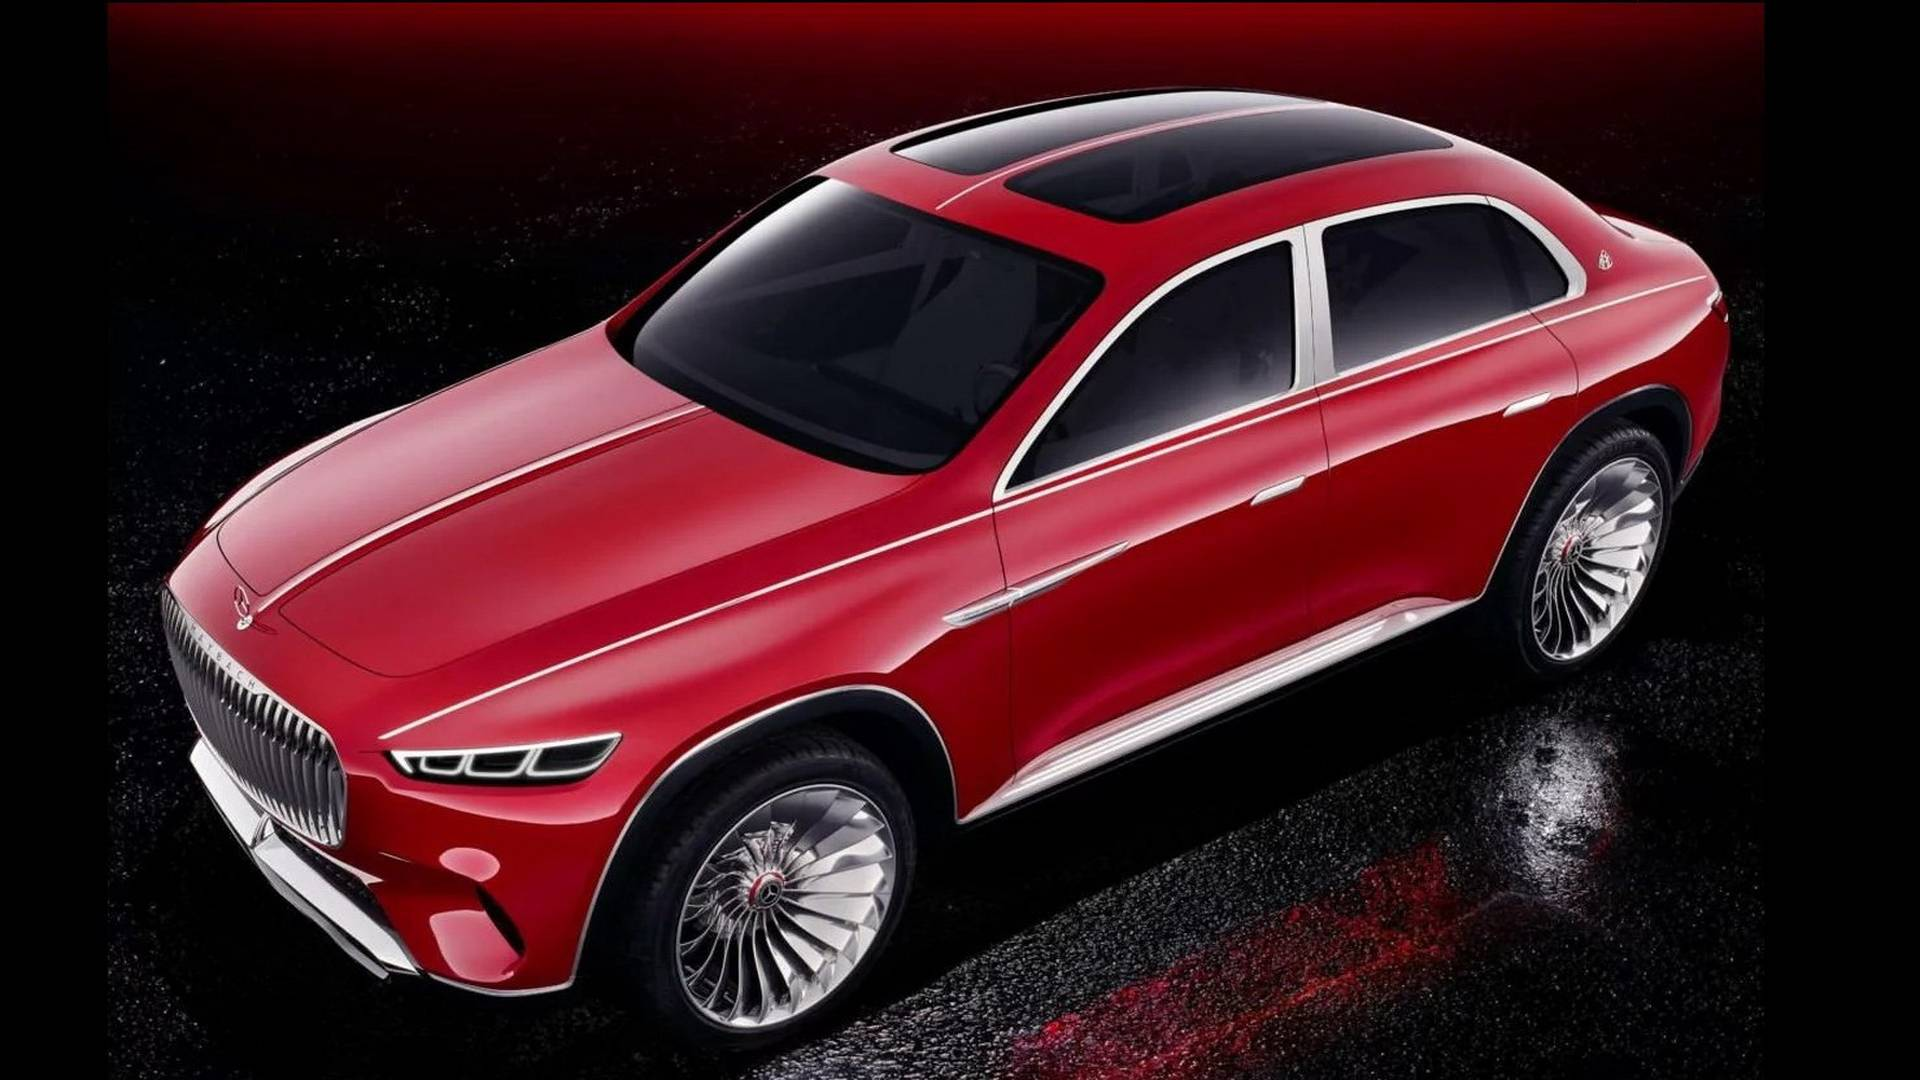 vision-mercedes-maybach-ultimate-luxury-leaked-official-image (3)